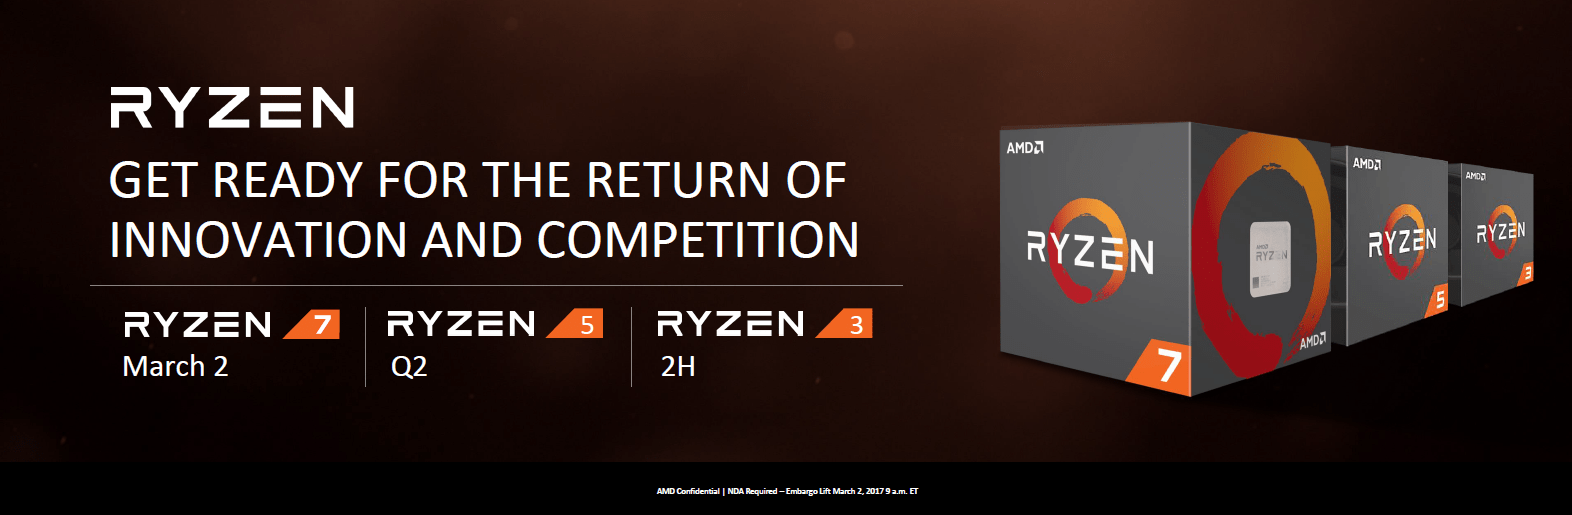 AMD-Ryzen-5-and-Ryzen-3-Series-Launching-In-2-H2-2017